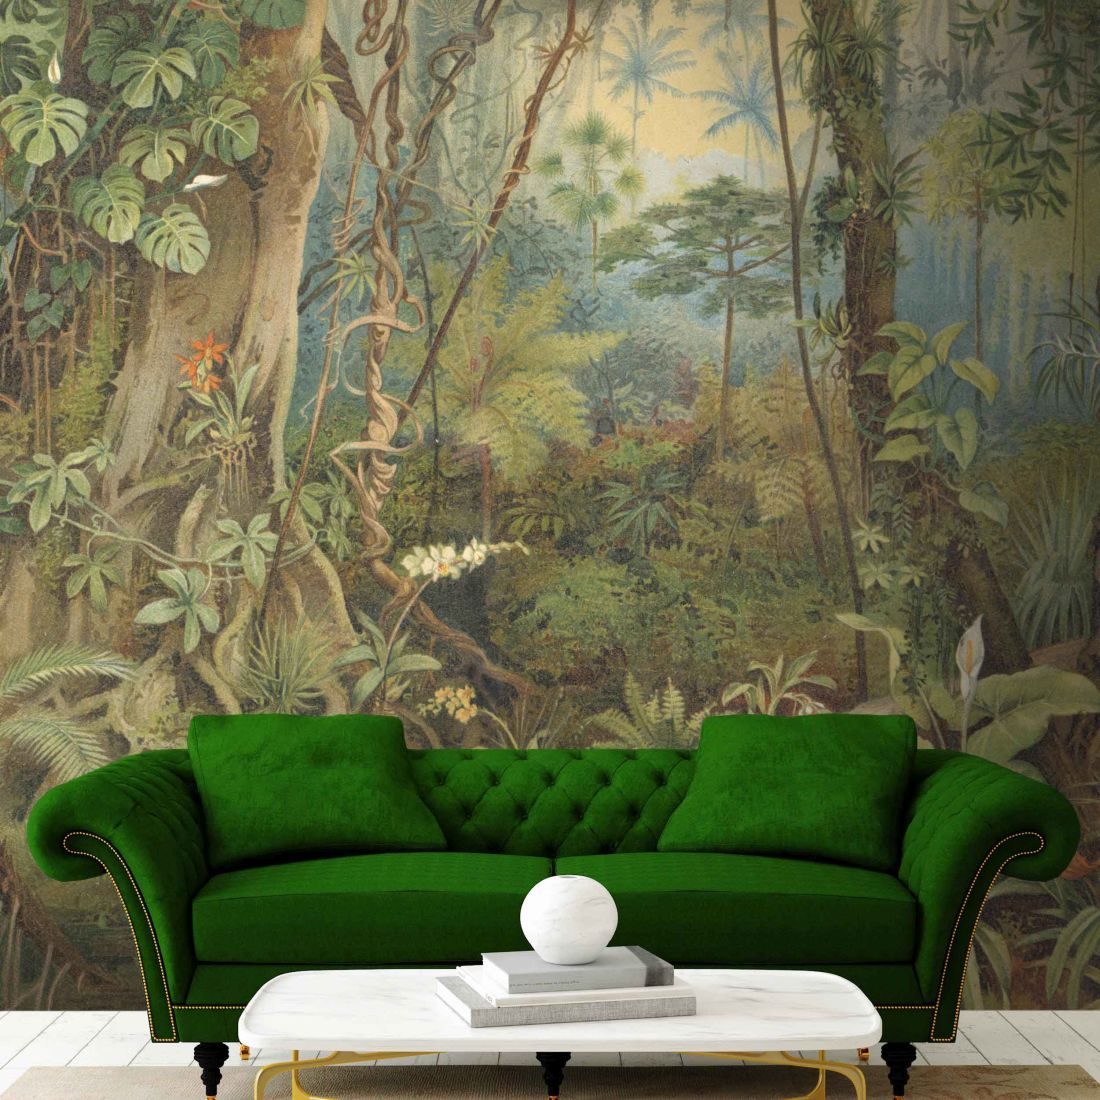 14woodchip-and-magnolia_tropical-paradise-wall-mural.jpg